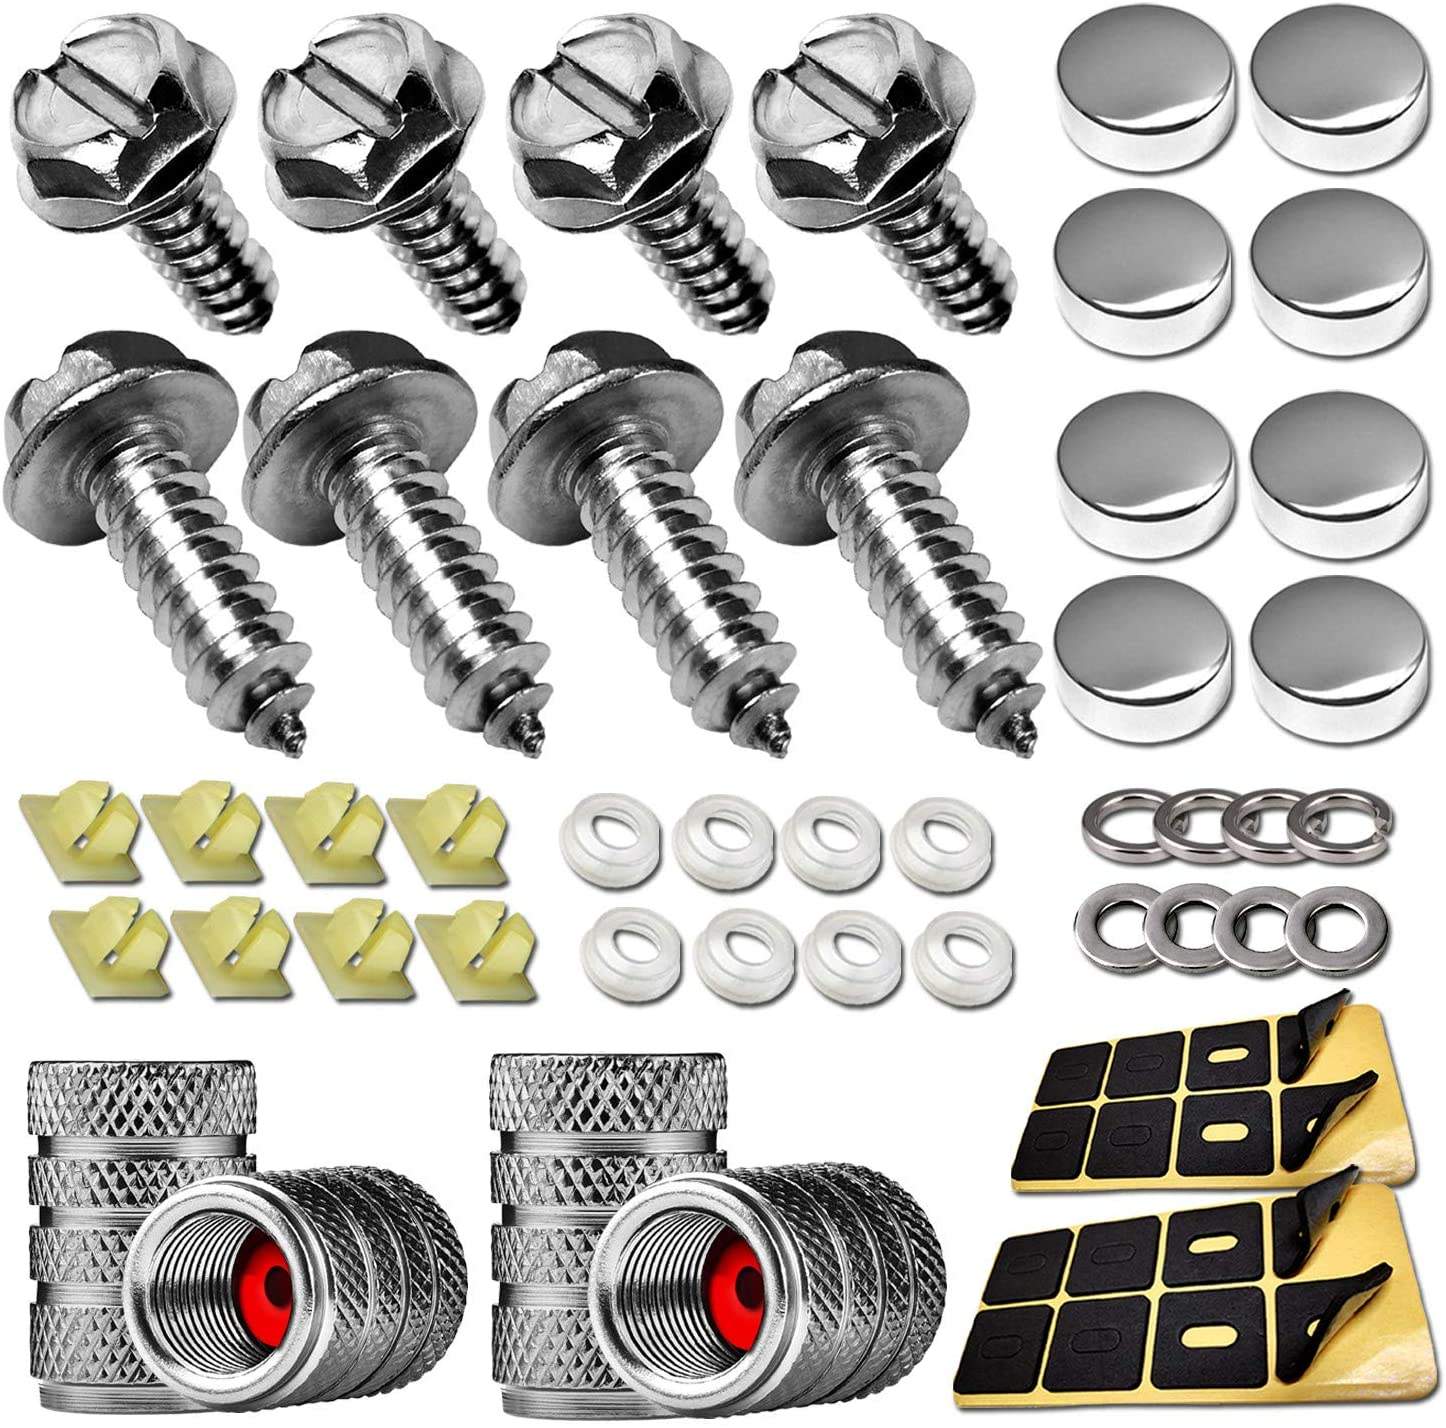 Stainless Steel License Plate Screws- Anti Rust Fastener Kit for Front and Rear Car Tag Frame Mounting, M6(1/4